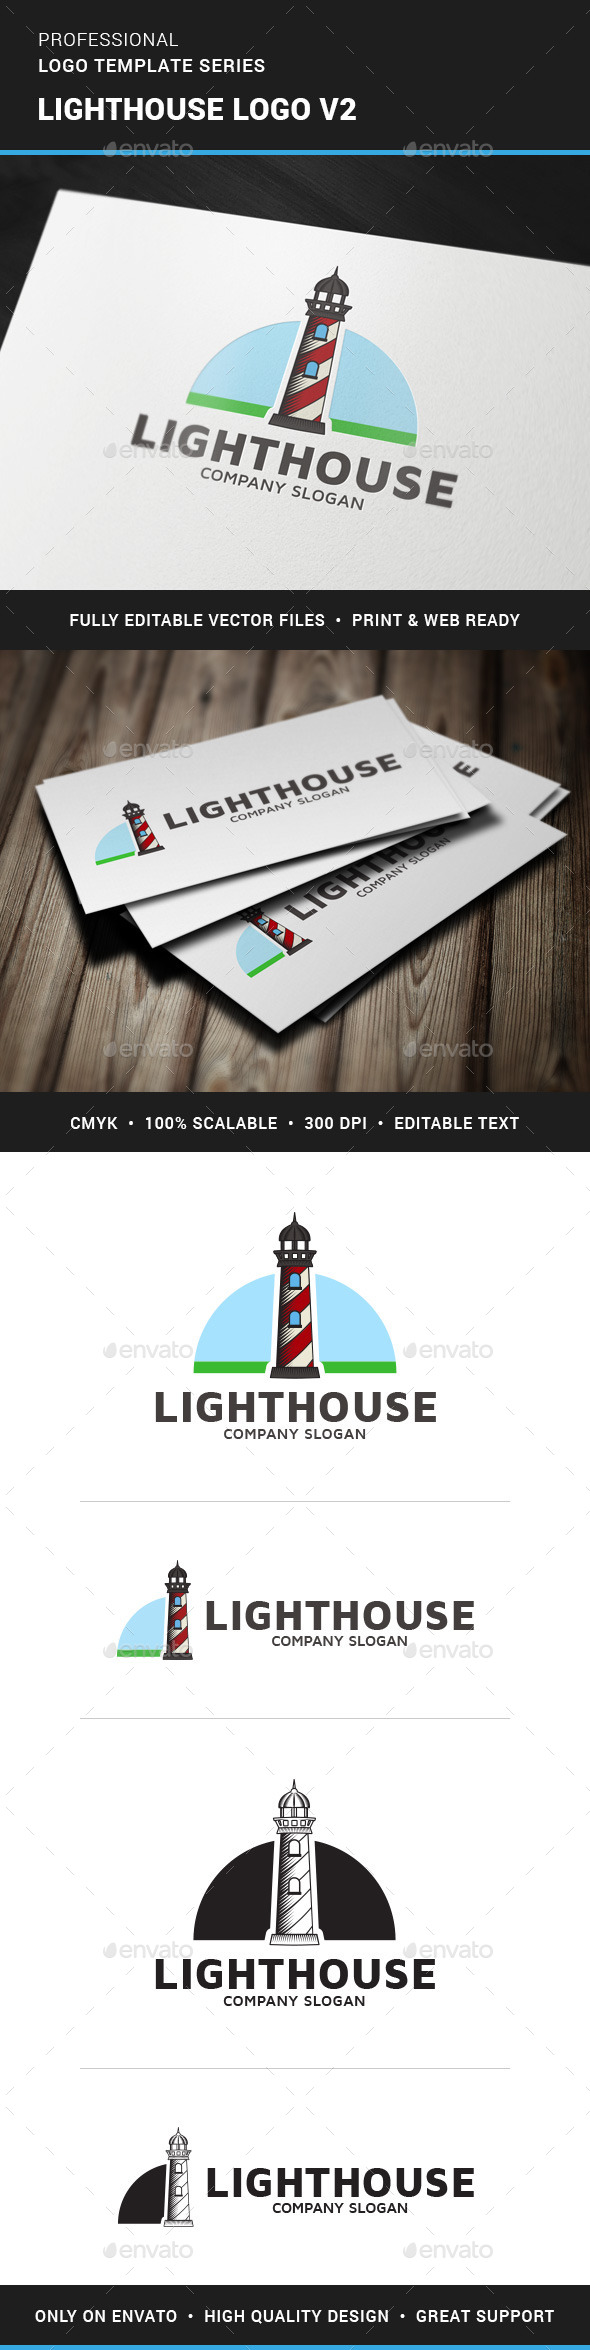 GraphicRiver Lighthouse Logo Template v2 11552715